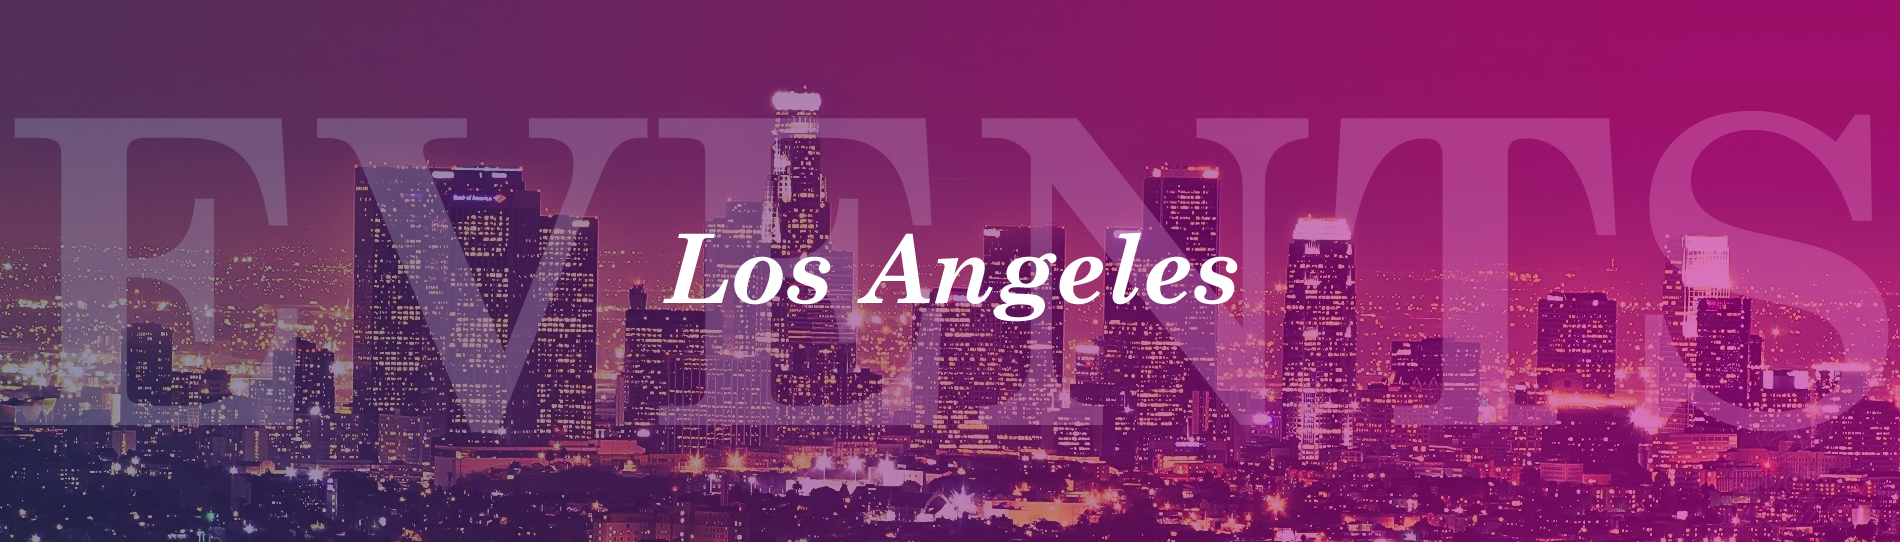 EventMozo Los Angeles